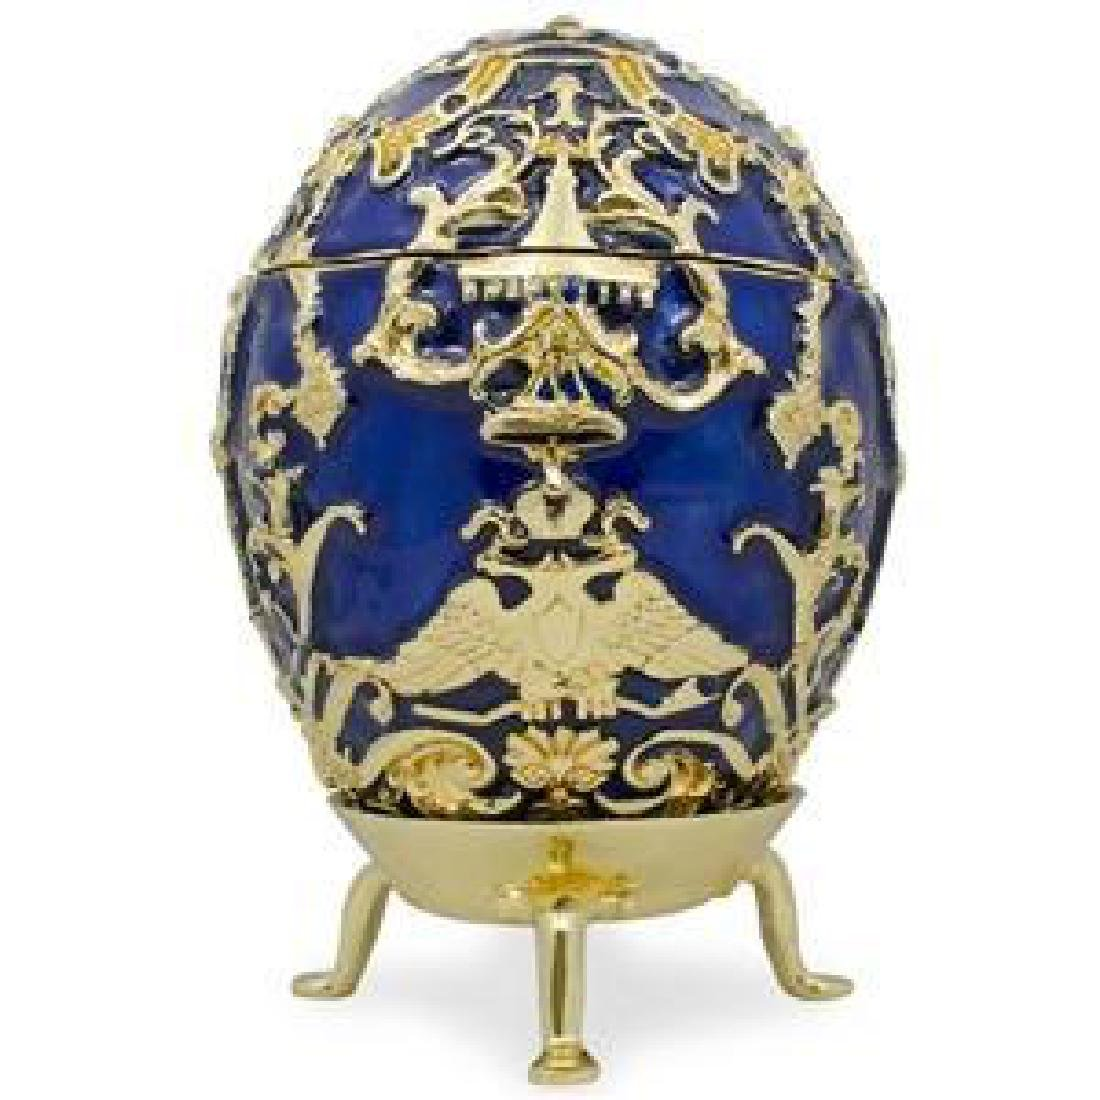 Faberge Inspired 1912 Tsarevich Russian